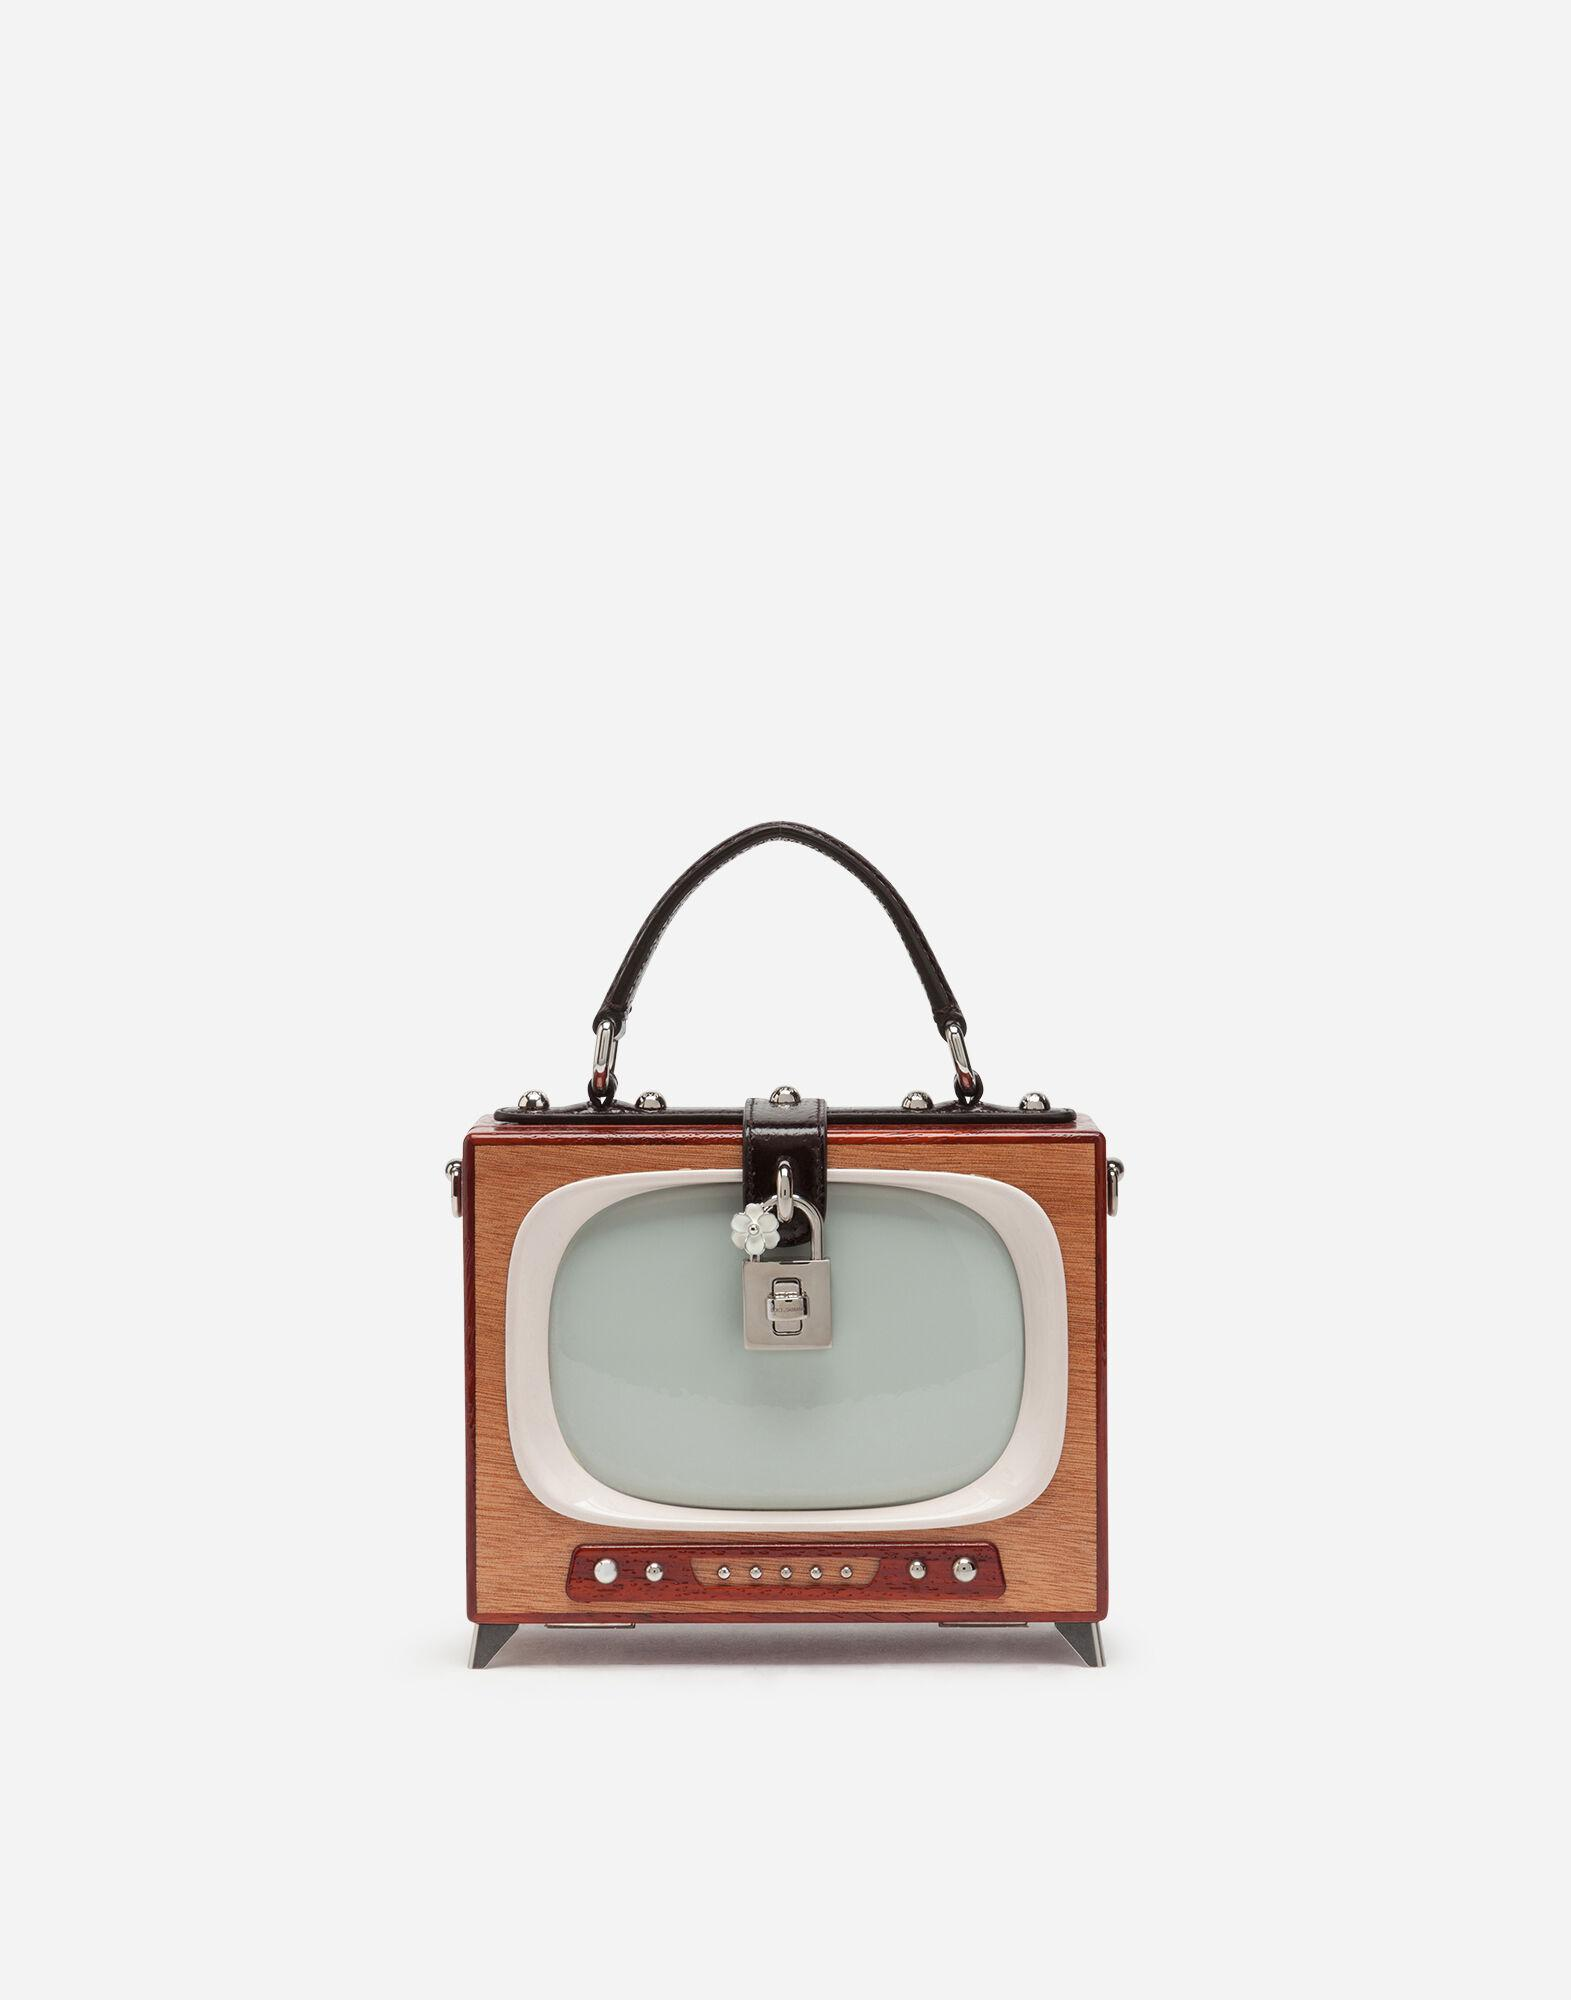 Tv Dolce Box bag in hand-painted wood